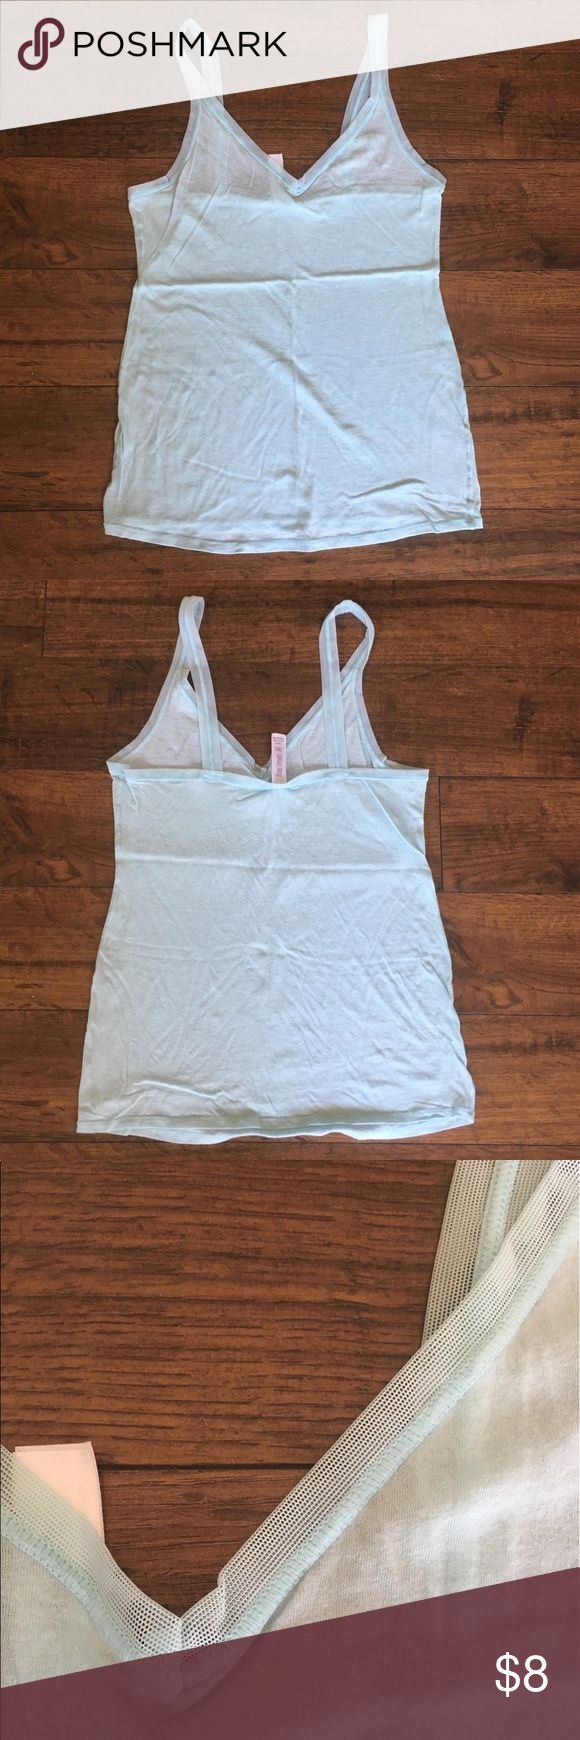 Light Blue Cami with Mesh Straps Light blue Cami with mesh straps. Very pretty. Size marked medium, but fits like a small. fine lines Tops Camisoles